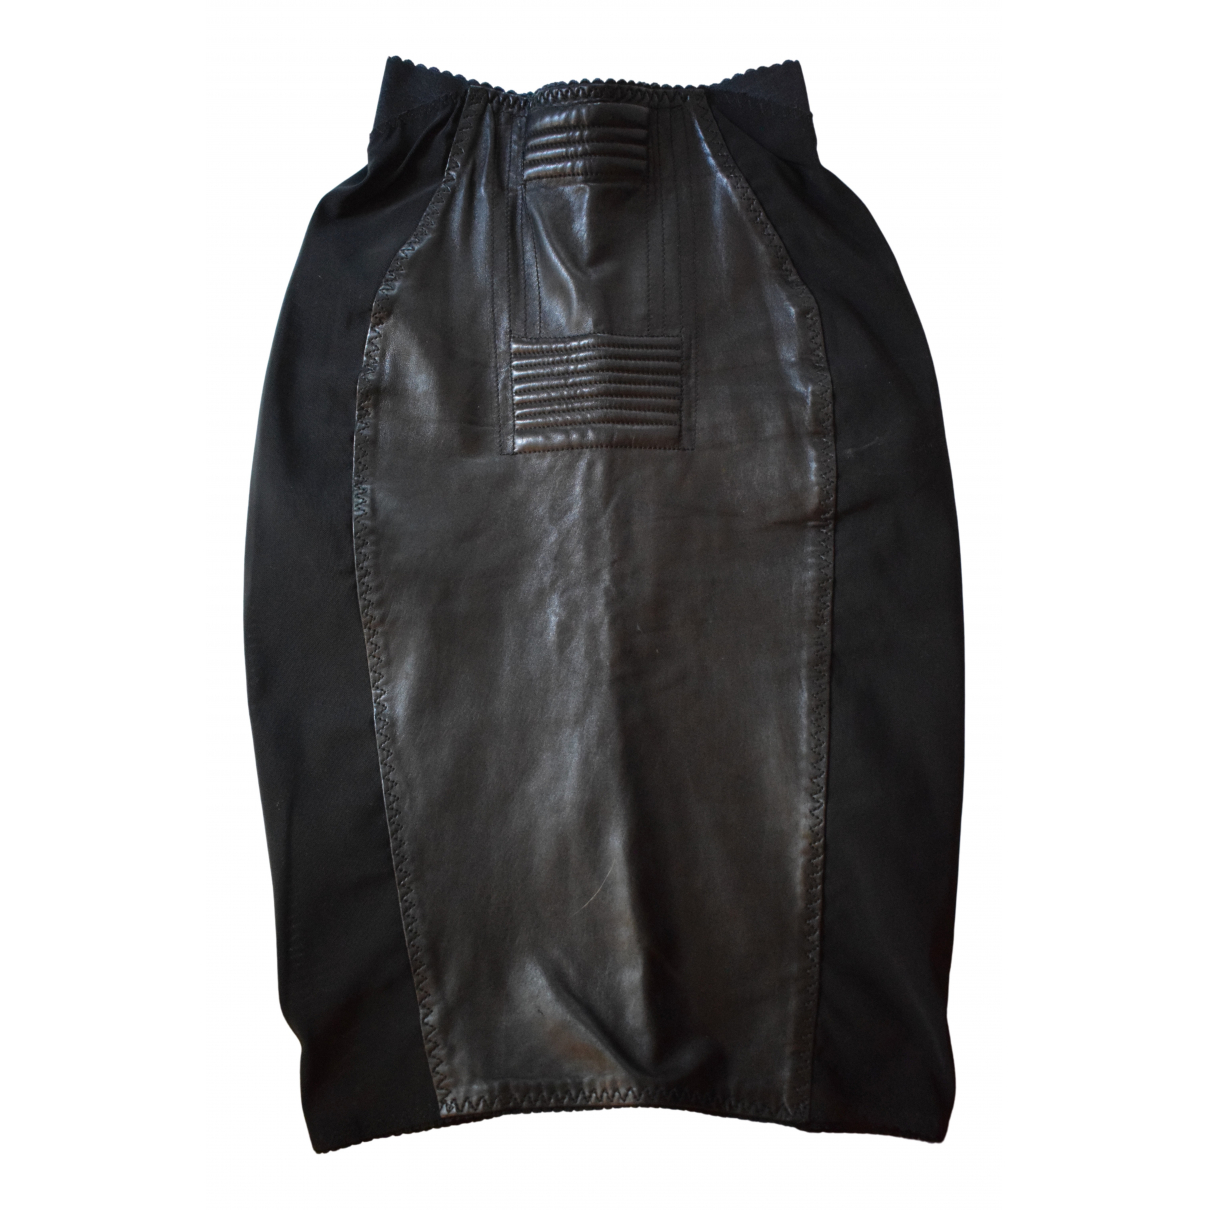 Jean Paul Gaultier N Black Leather skirt for Women 36 FR